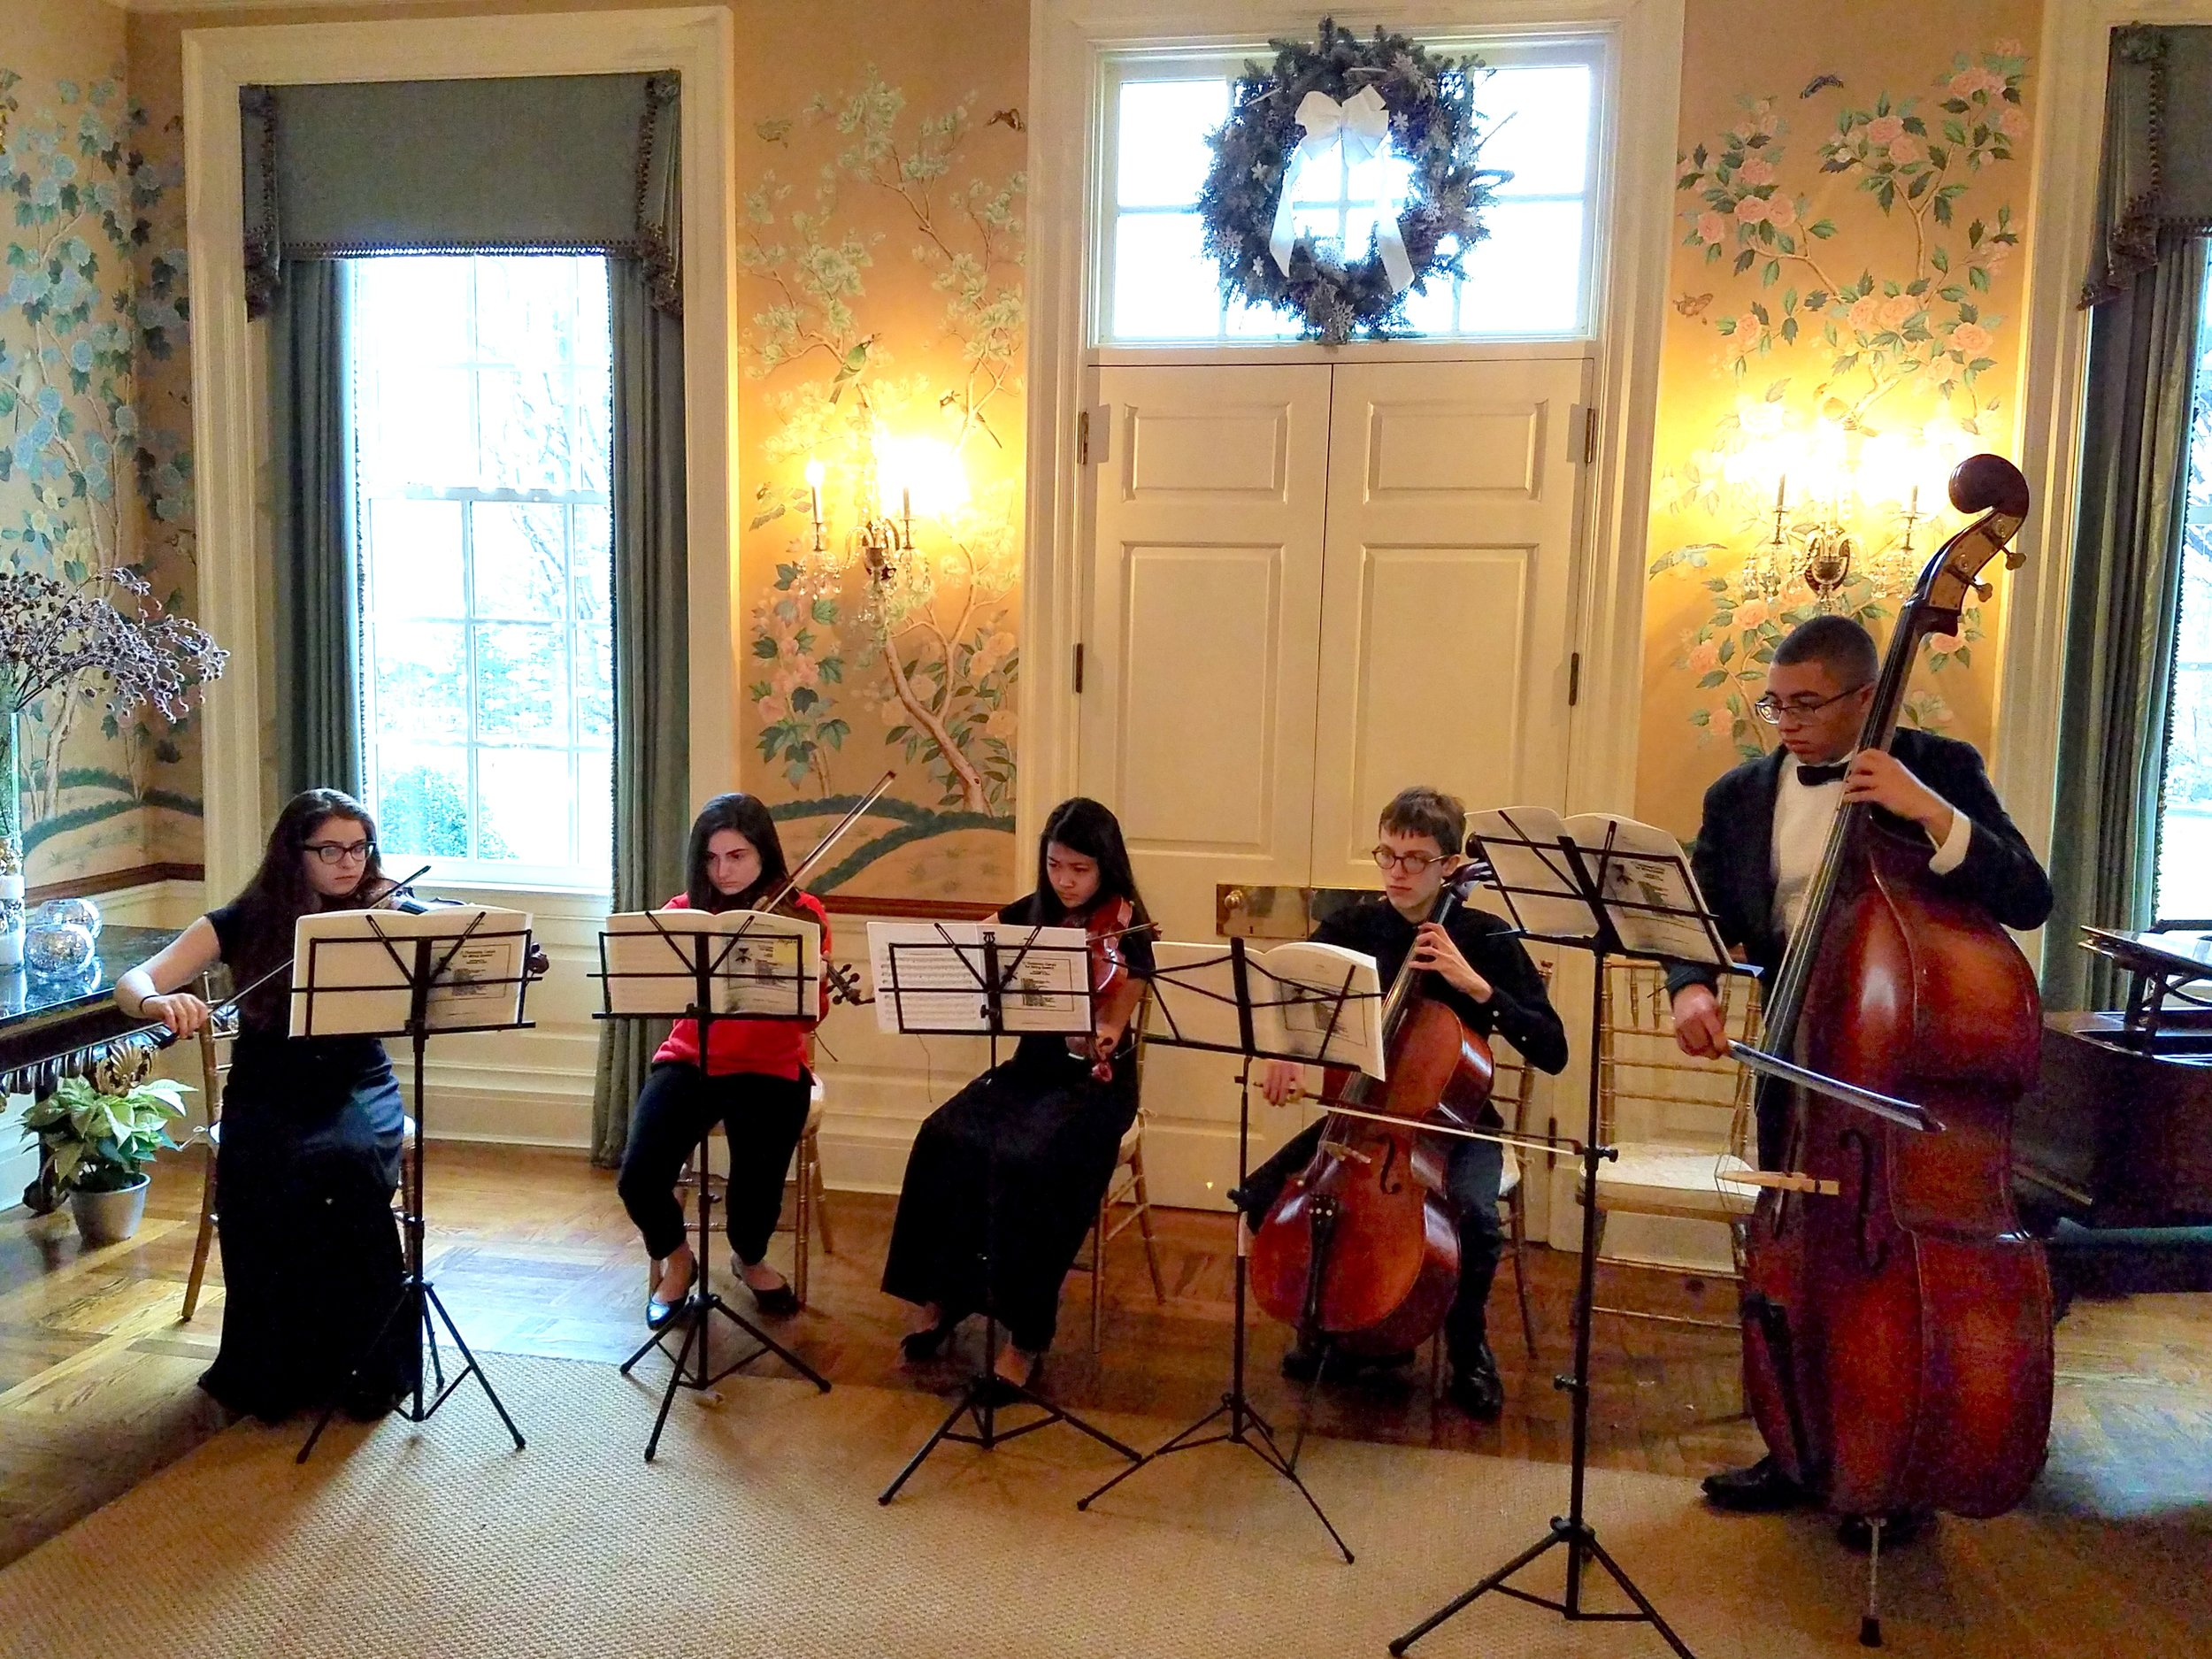 PA Governor's Holiday Open House - Sunday, December 2019 (date TBA) - Governor's Mansion, HarrisburgEach year, Governor and Mrs. Tom Wolf invite a YC2 group to travel to Harrisburg to perform at their annual Holiday Open House.